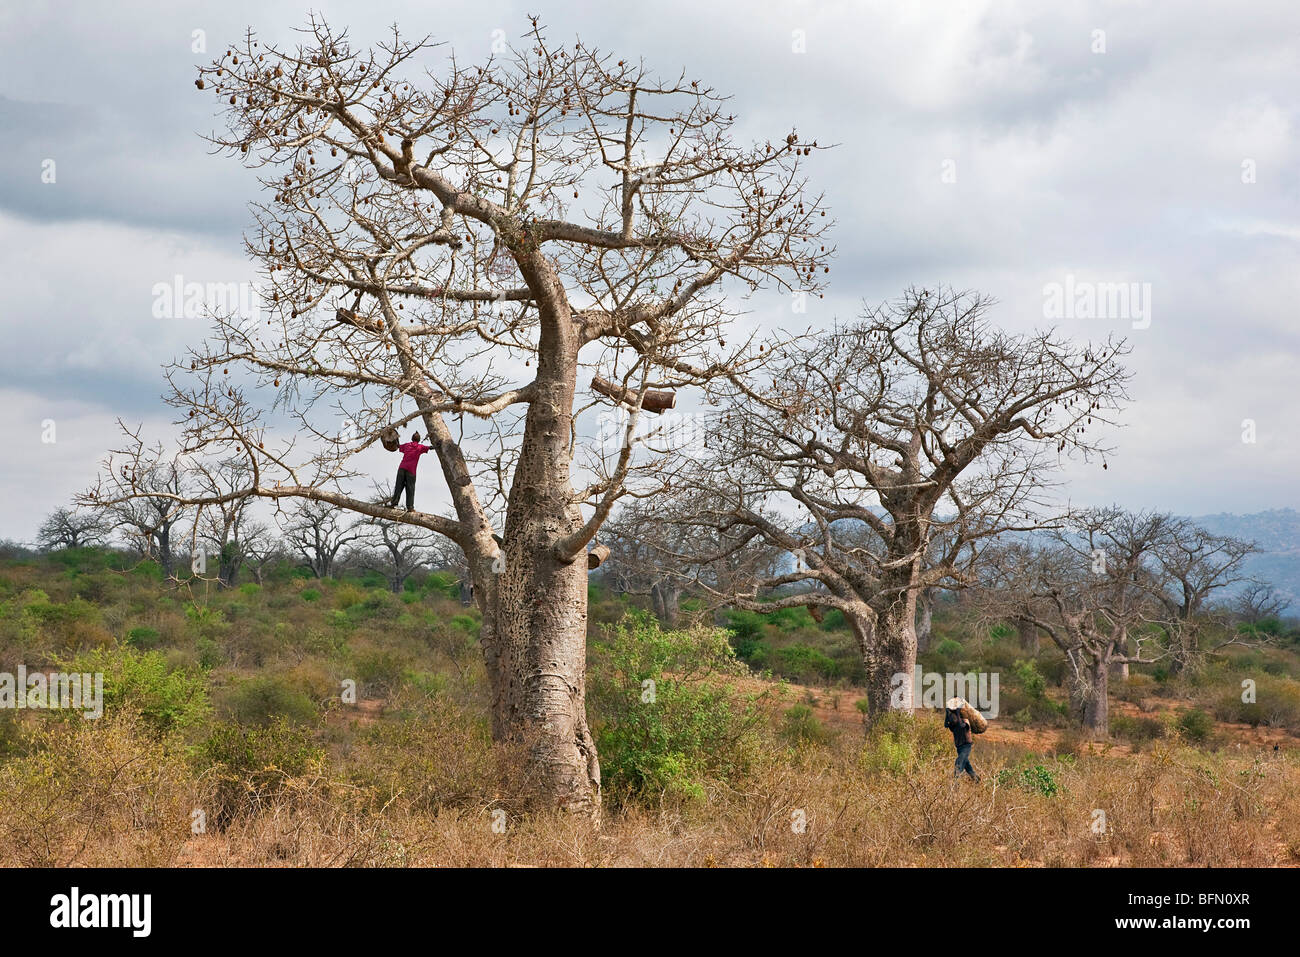 Kenya, Kibwezi. A man carries a traditional beehive to his friend for hanging in a large baobab tree. - Stock Image